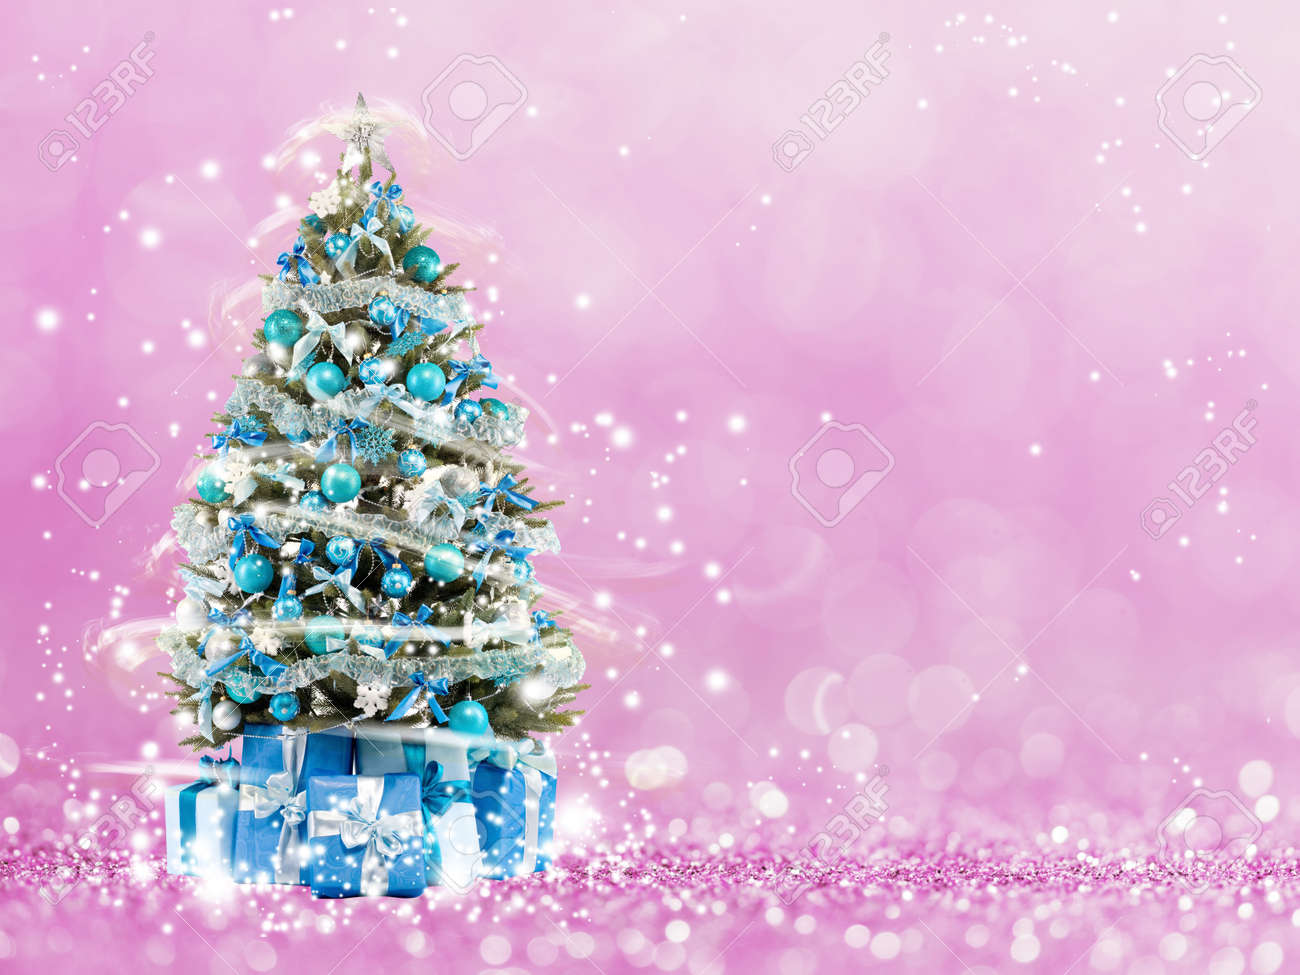 Christmas Tree From The Xmas Lights Play With Light Pink Bokeh Background Stock Photo